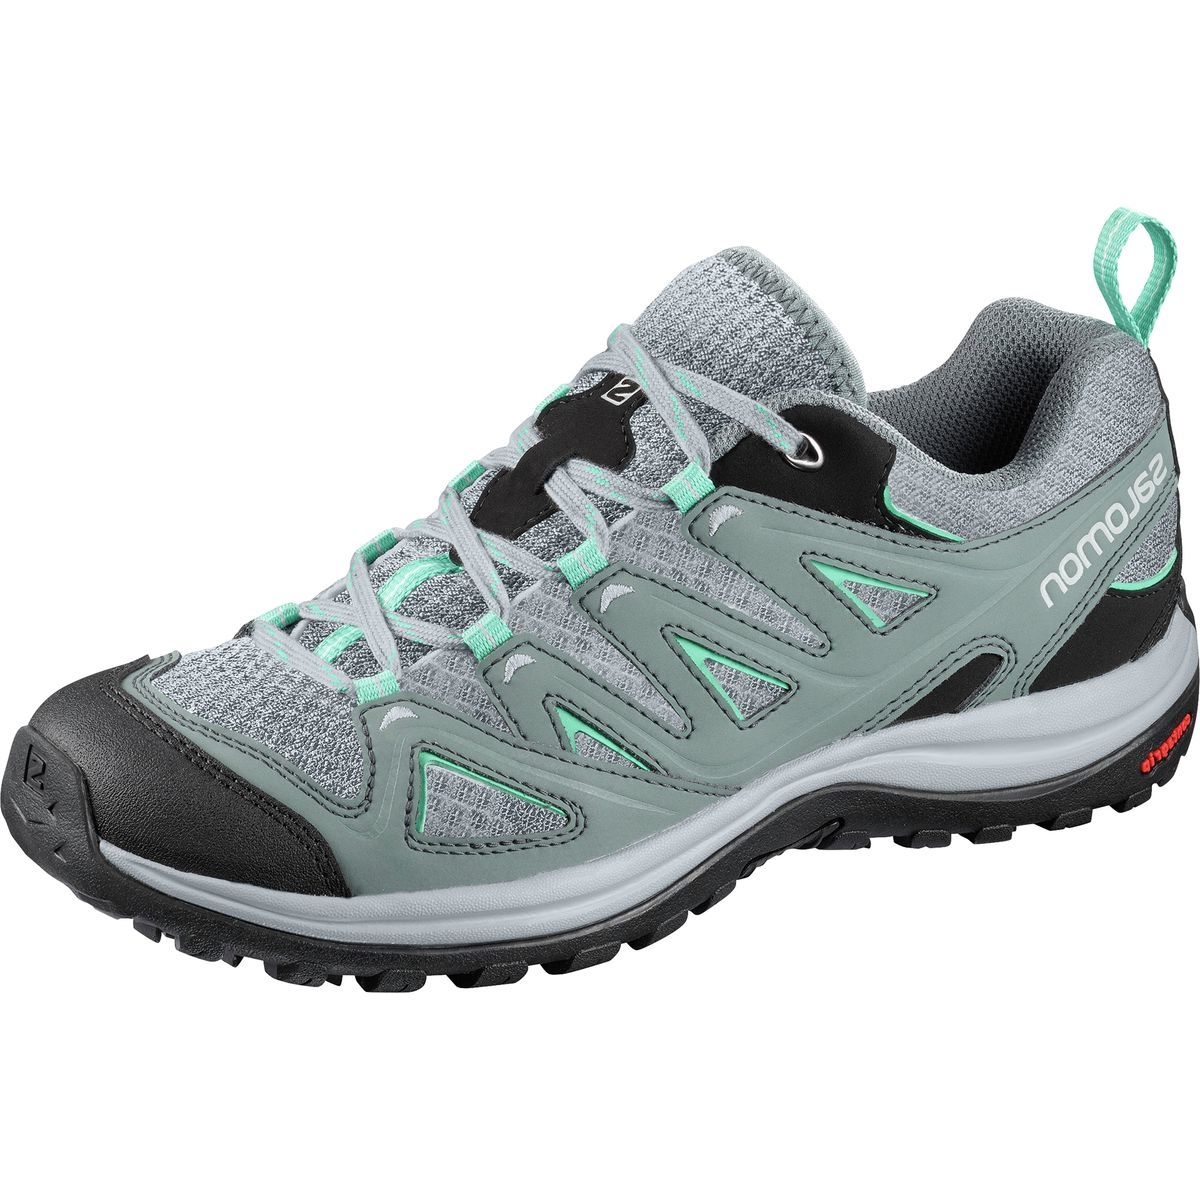 Salomon Ellipse 3 Aero Hiking Shoe - Women's